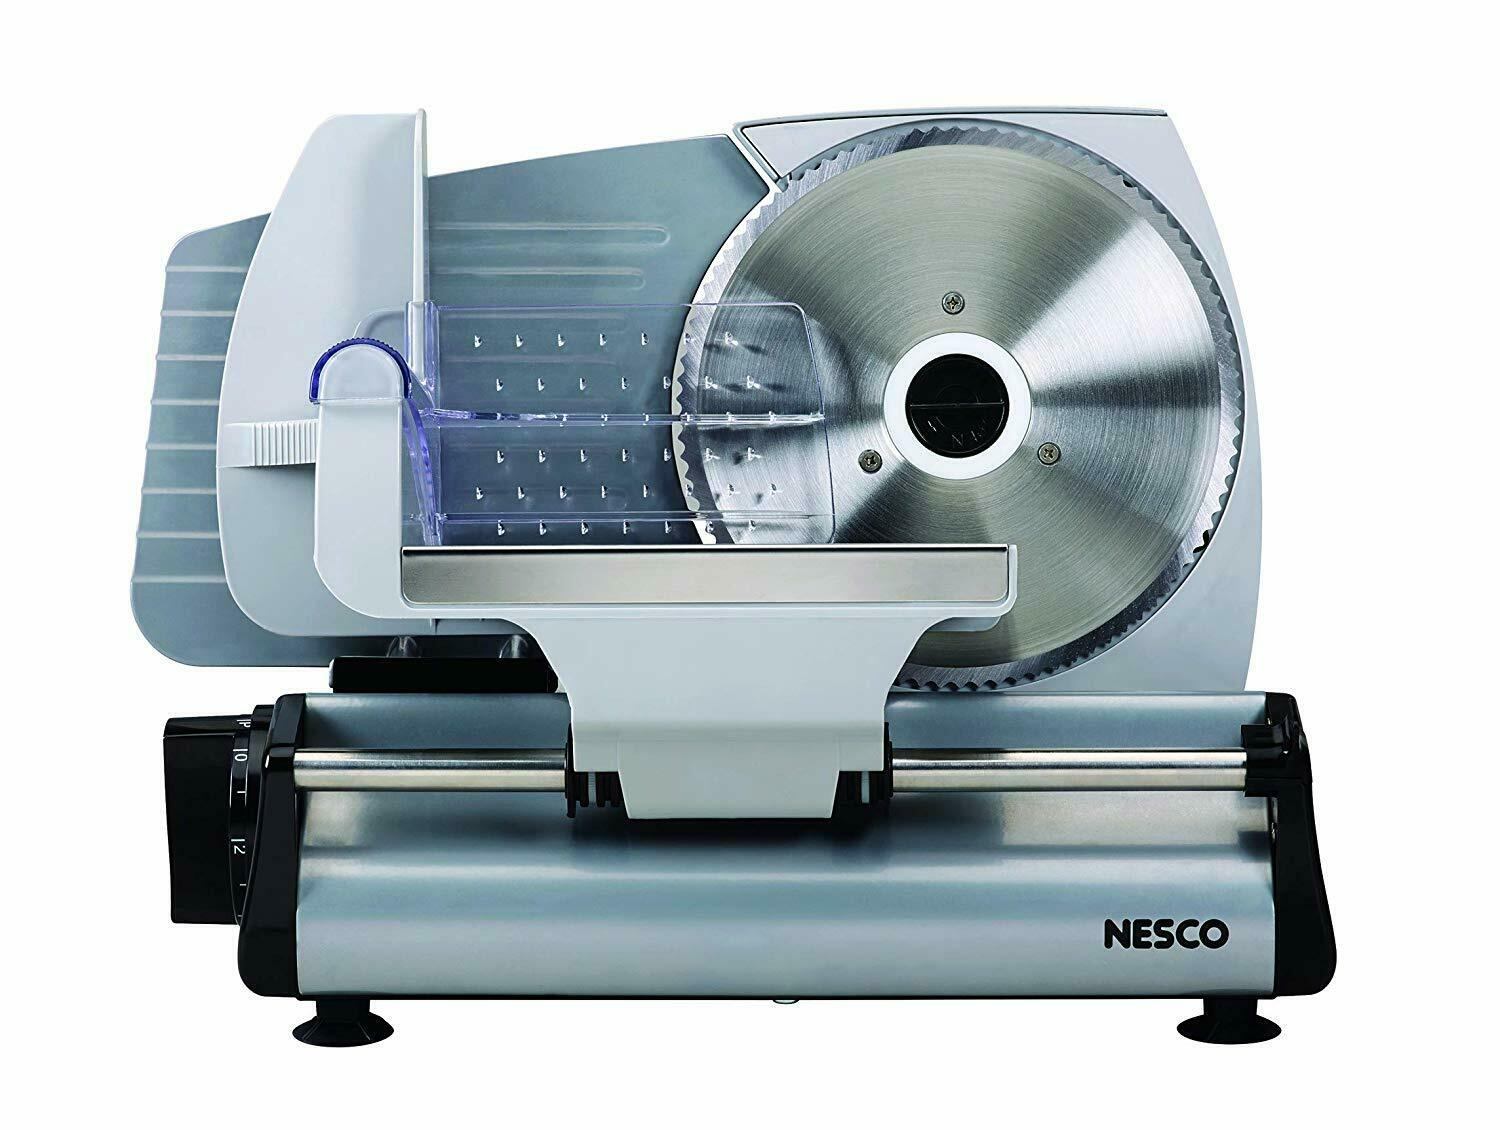 Nesco Electric fromage cutter Food Meat Coupe 7.5 pouces Lame pain trancher Home